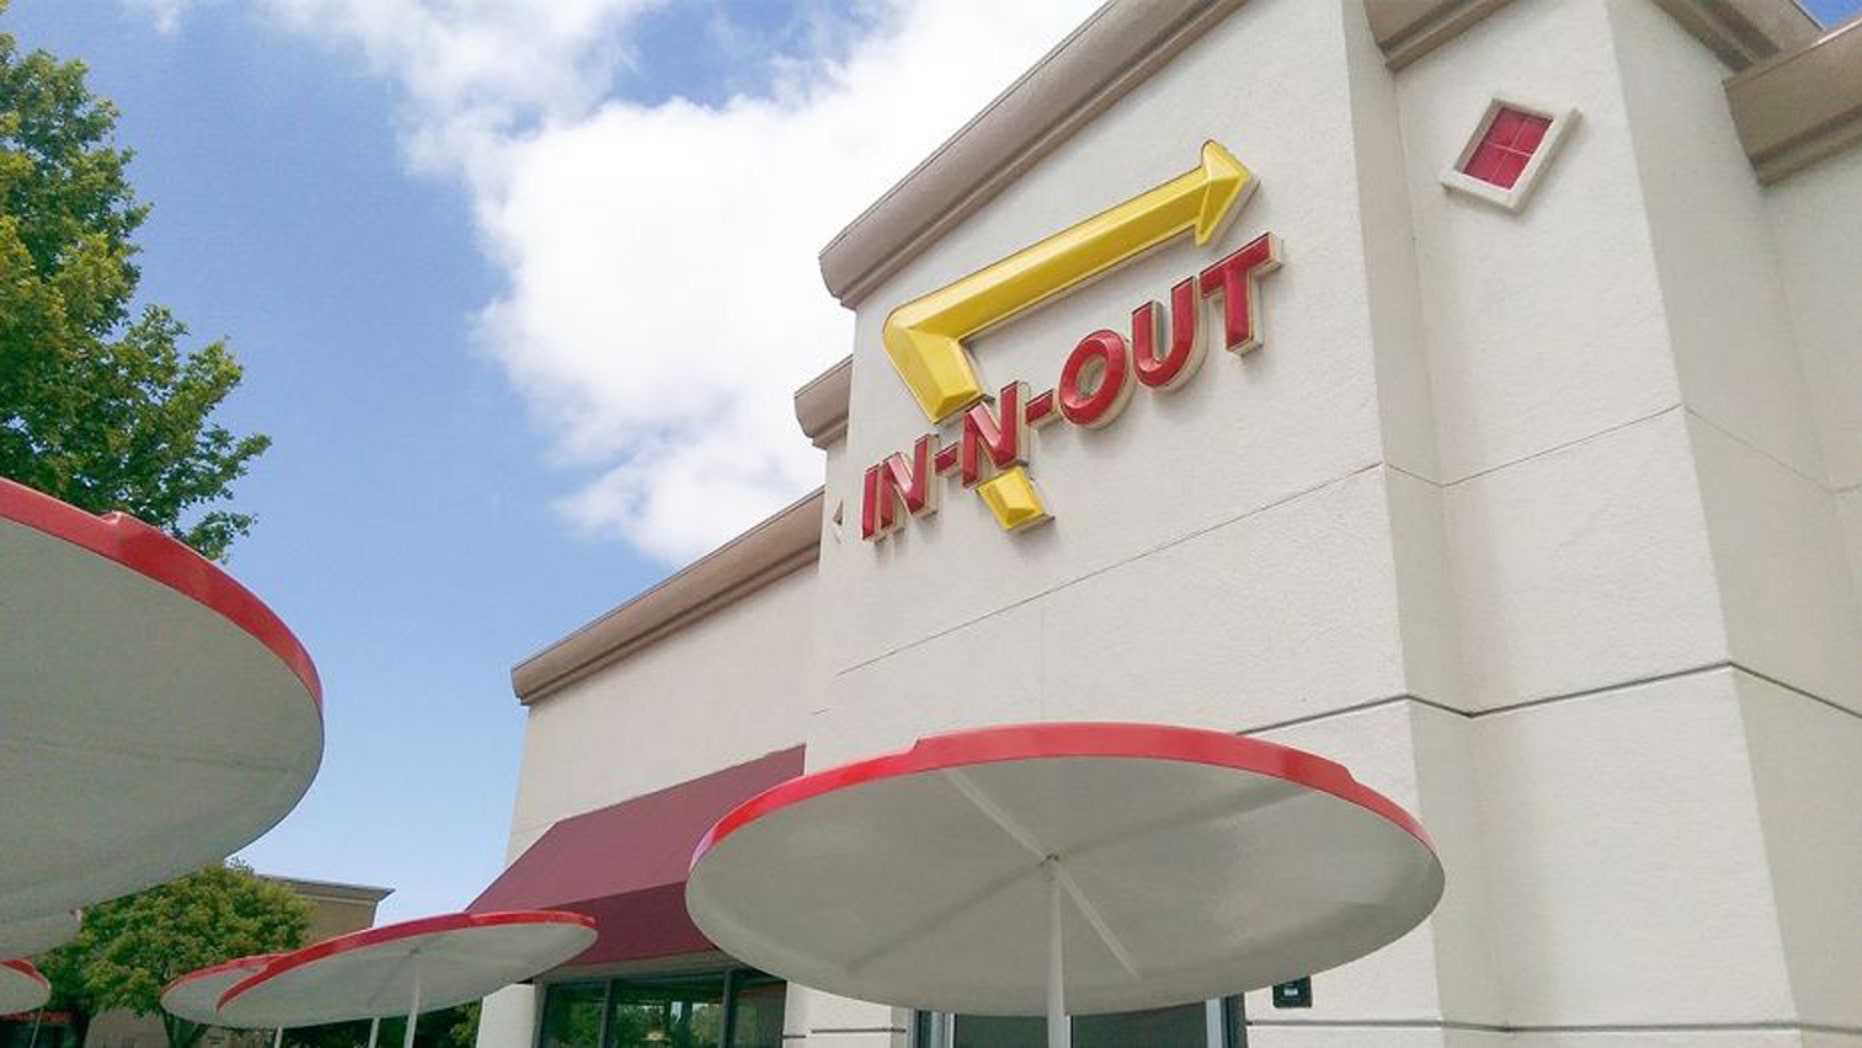 Calls for an In-N-Out boycott are getting mixed responses on social media.